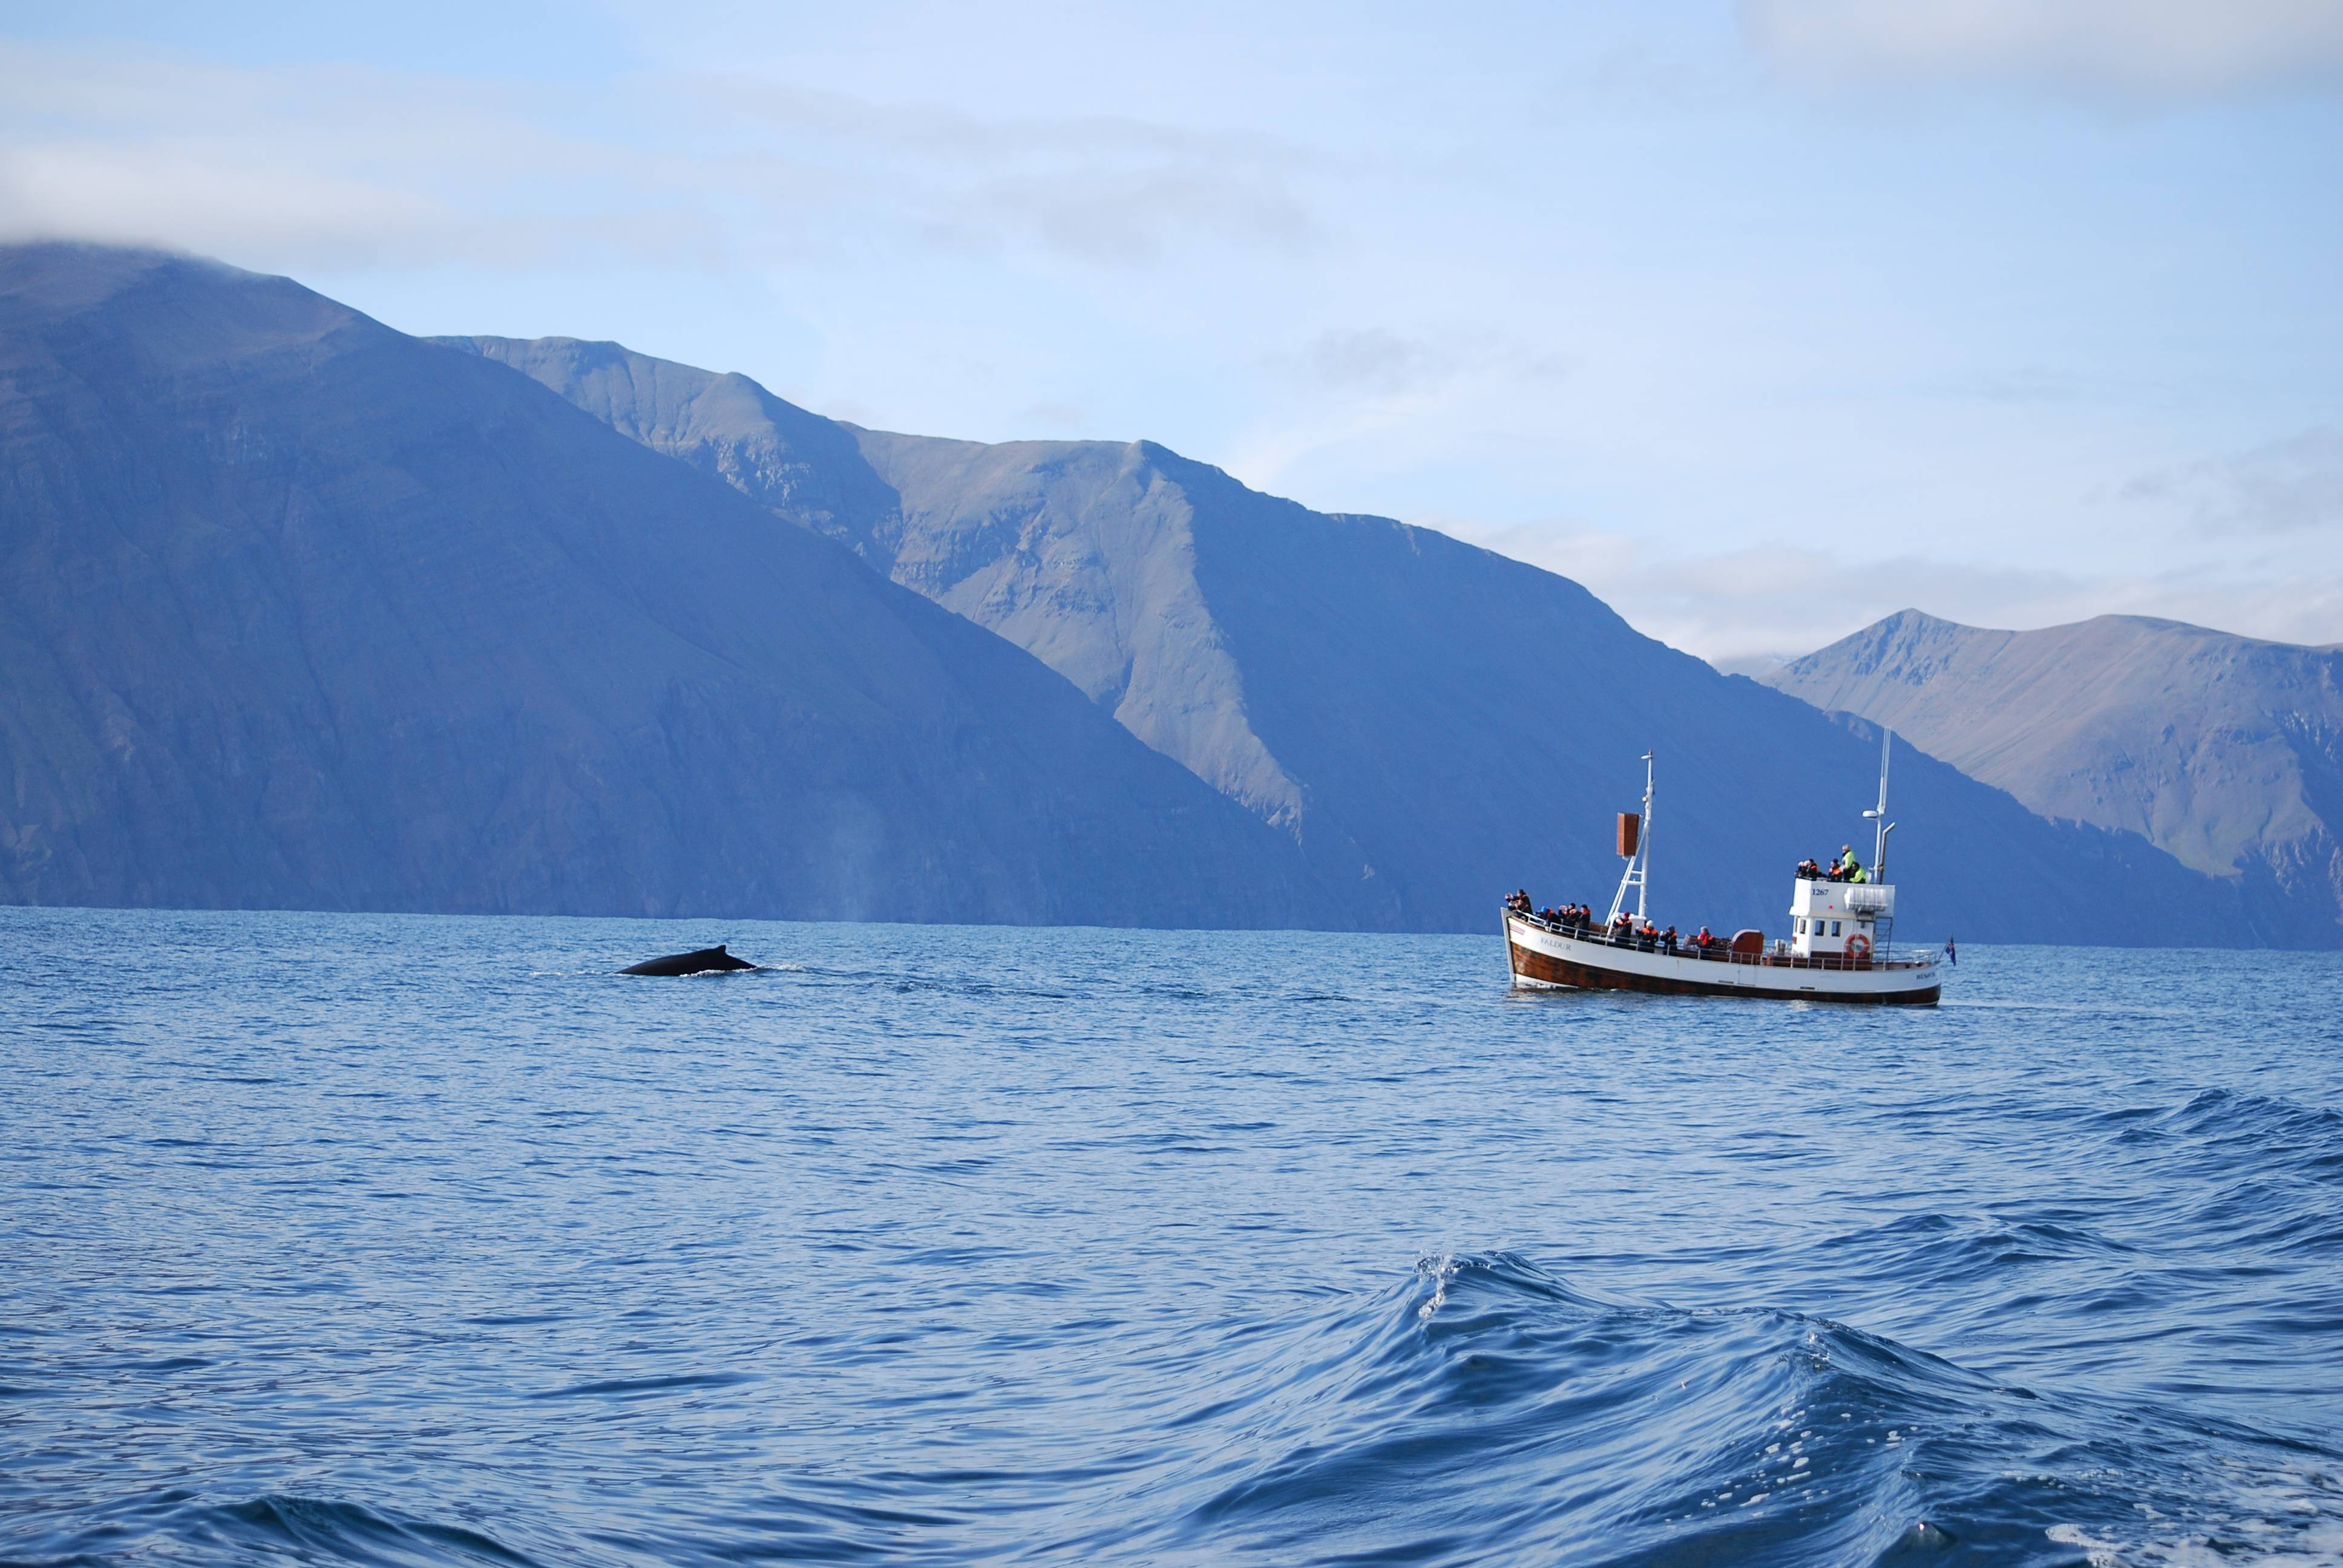 Photo 2: Husavik et ses baleines